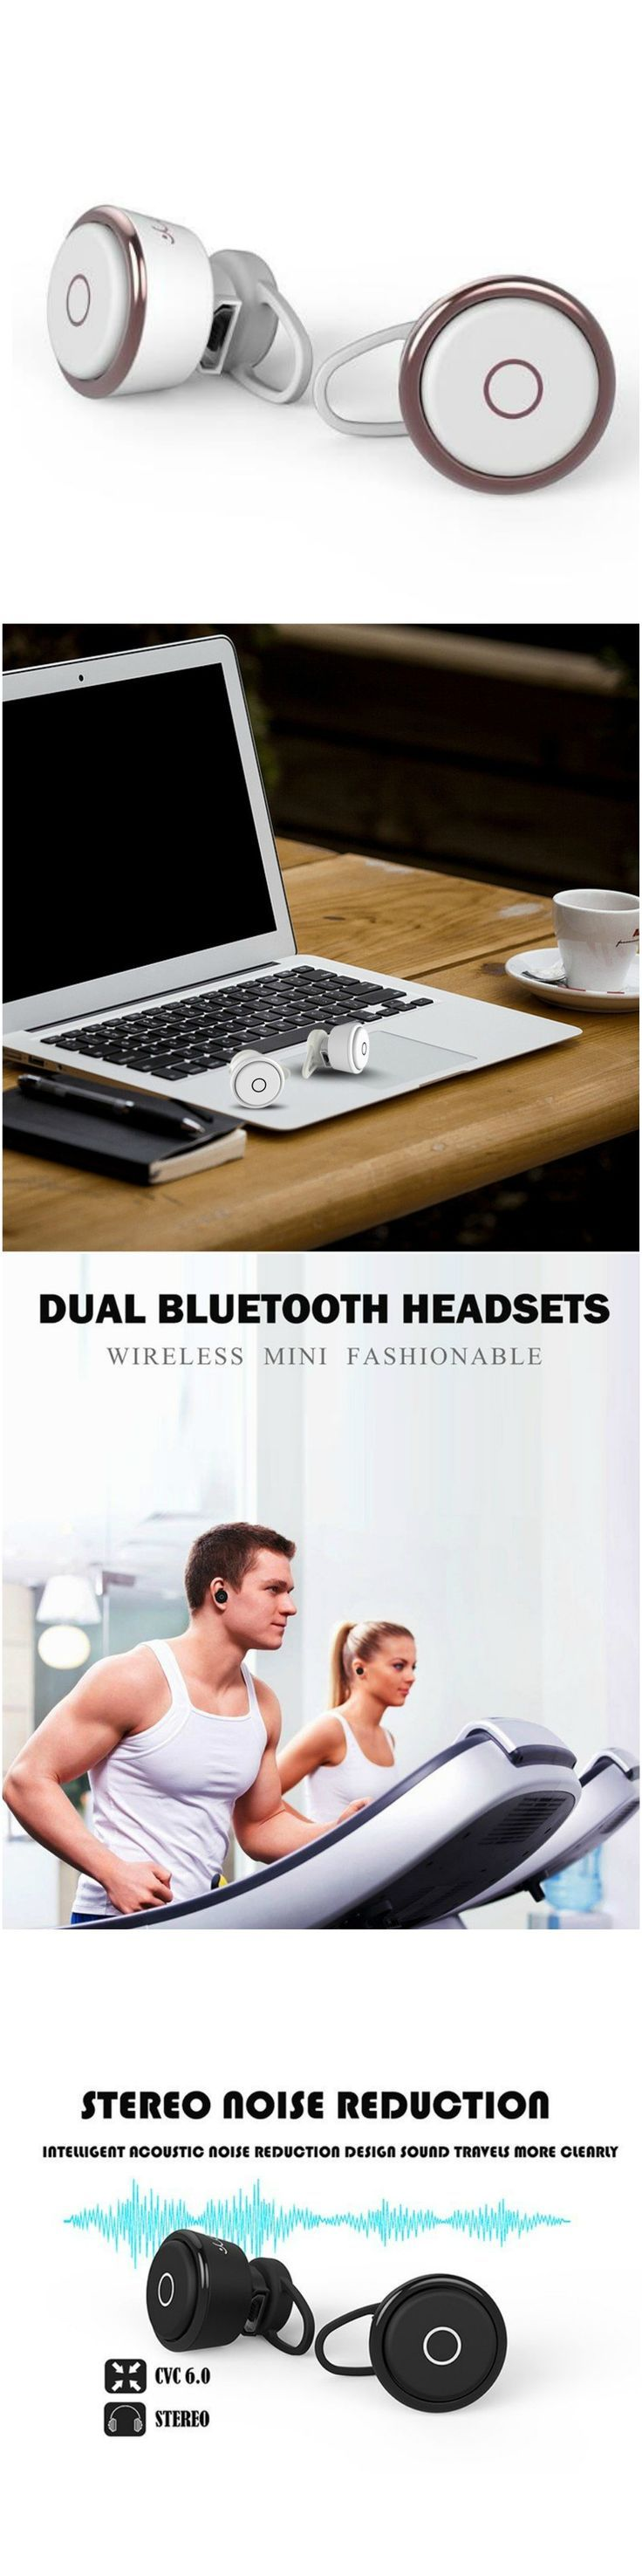 Bluetooth Wireless Noise Cancelling Headphones. Great for workout, gym and running without tangles!  Great gift for android and iPhone users Great for workout, gym and running without tangles! Fits well into workout and gym clothes. Great gift products for android Samsung Galaxy, LG, Sony and Apple iPhone 7 users, men and women and those who are active in health and fitness and travel. Take music anywhere, packs easily in purses, luggages, backpacks and travel bags. #Technology #gizmo #cool